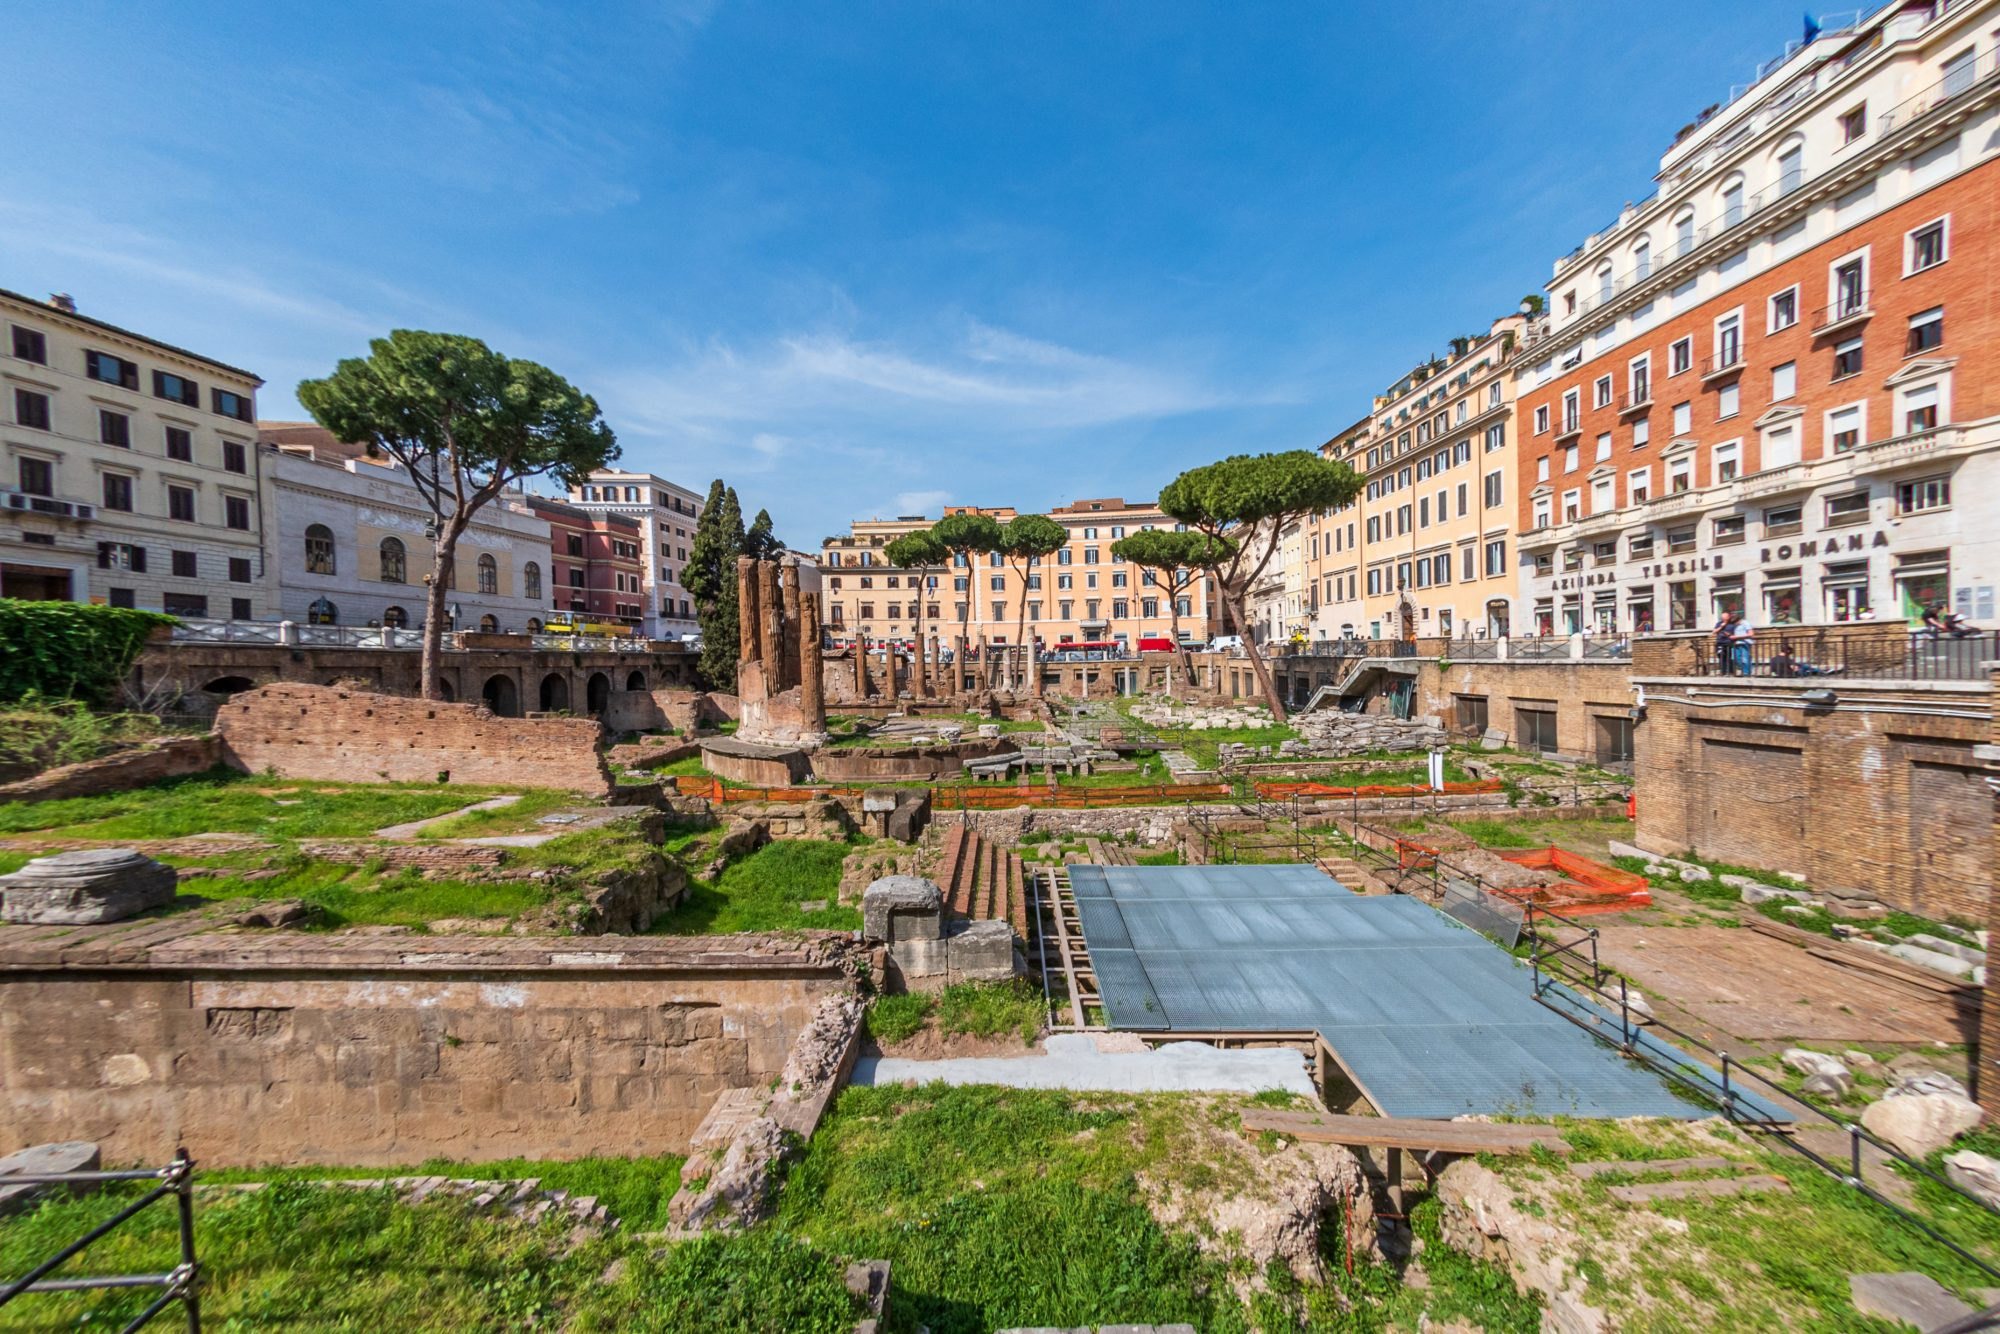 The ruins of Largo di Torre Argentina sacred area containing Roman temples and the remains of Pompey's Theatre, now a cat sanctuary.